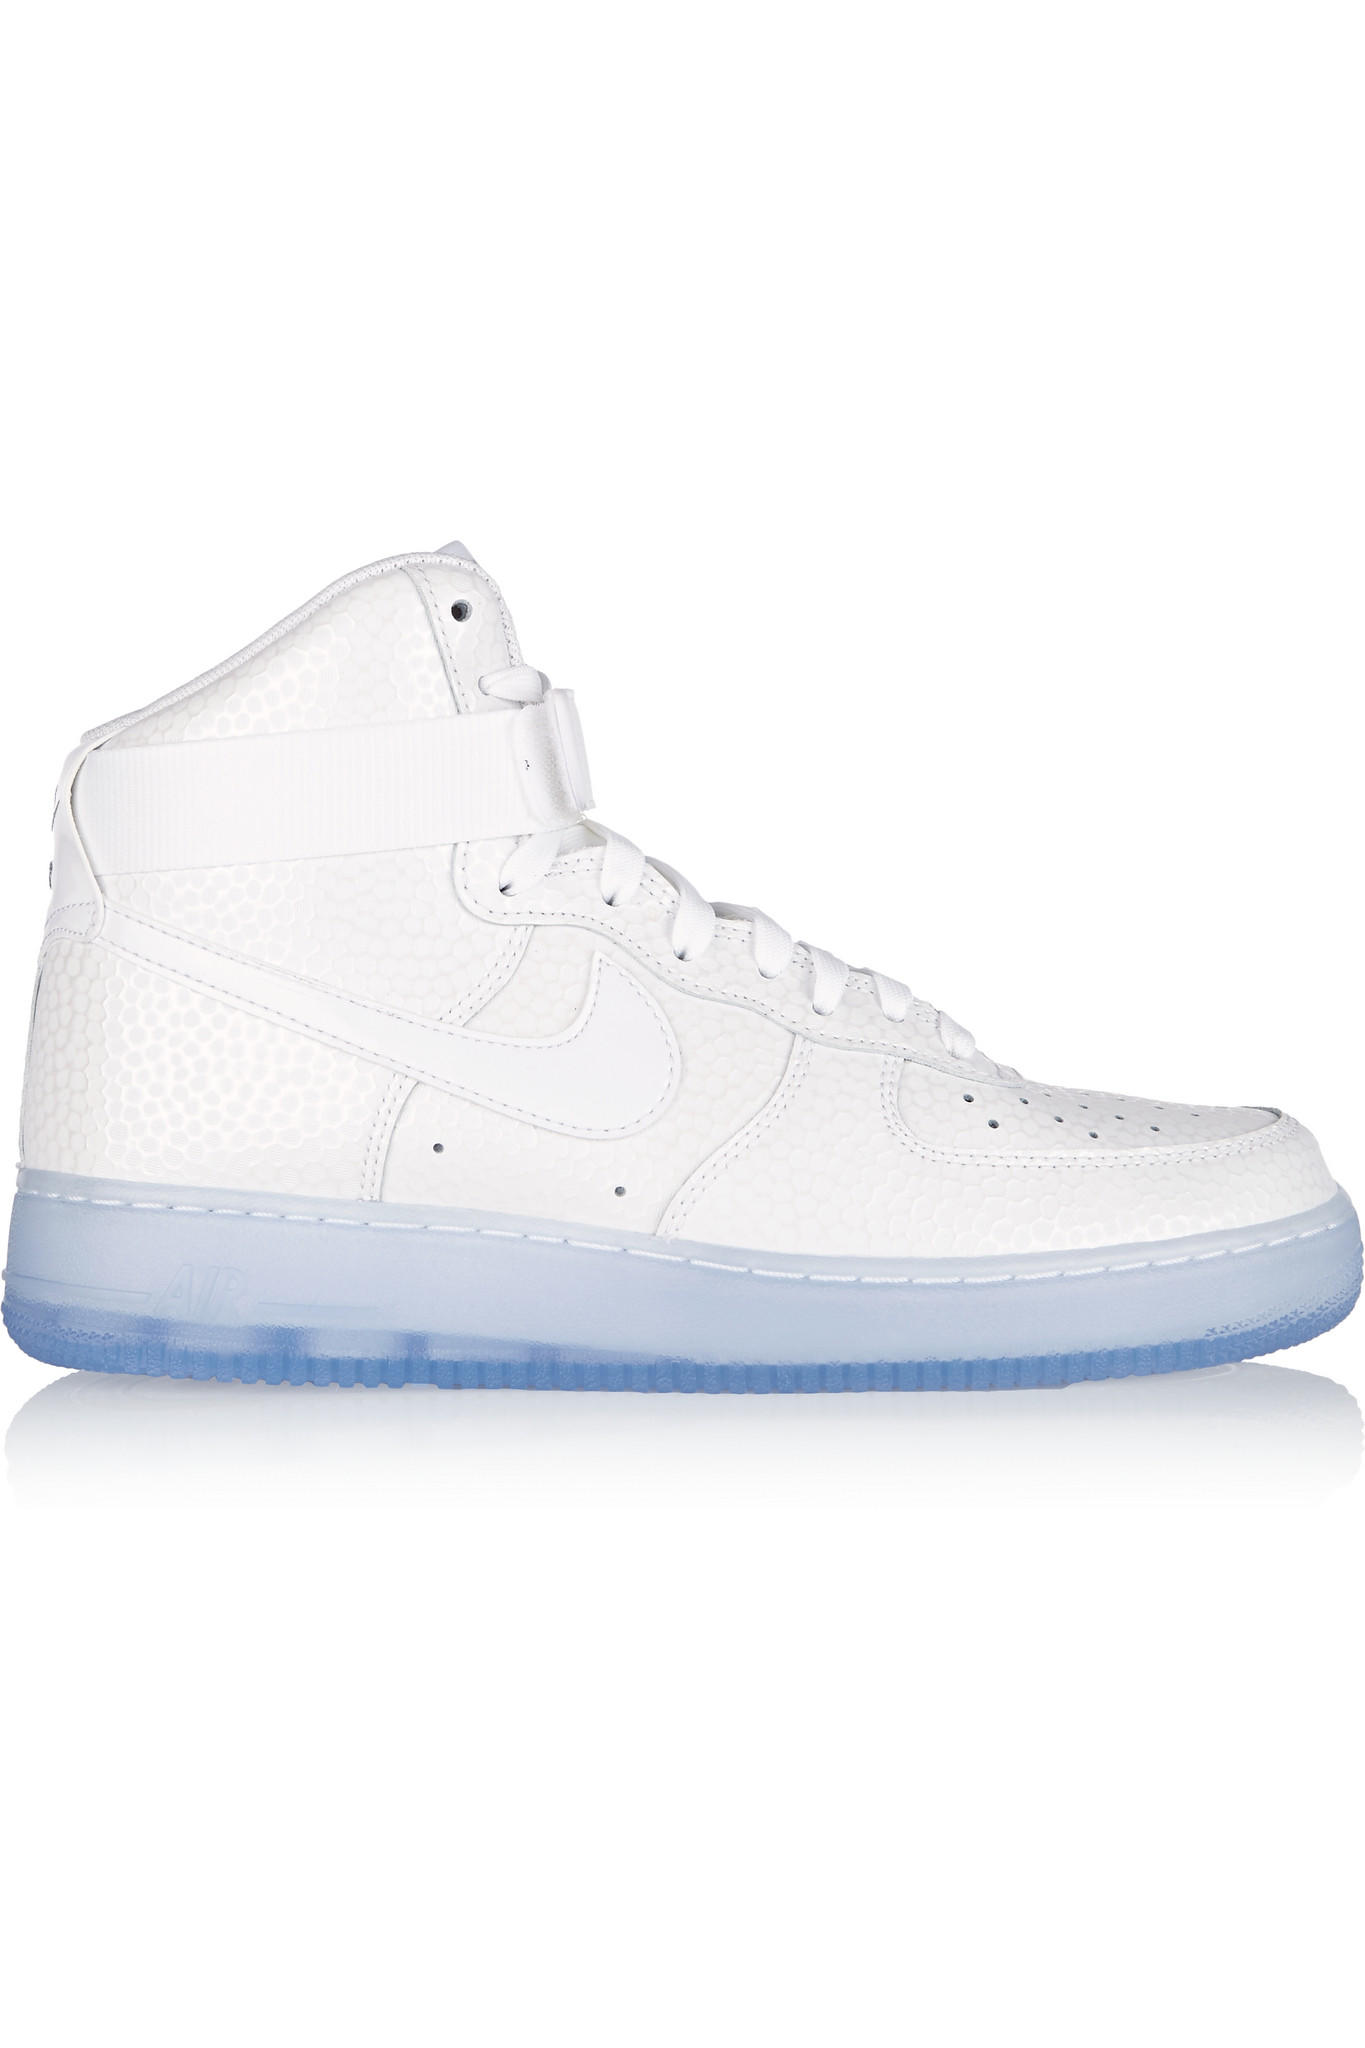 Nike - Air Force 1 Hi Premium from NET-A-PORTER 008e01daed